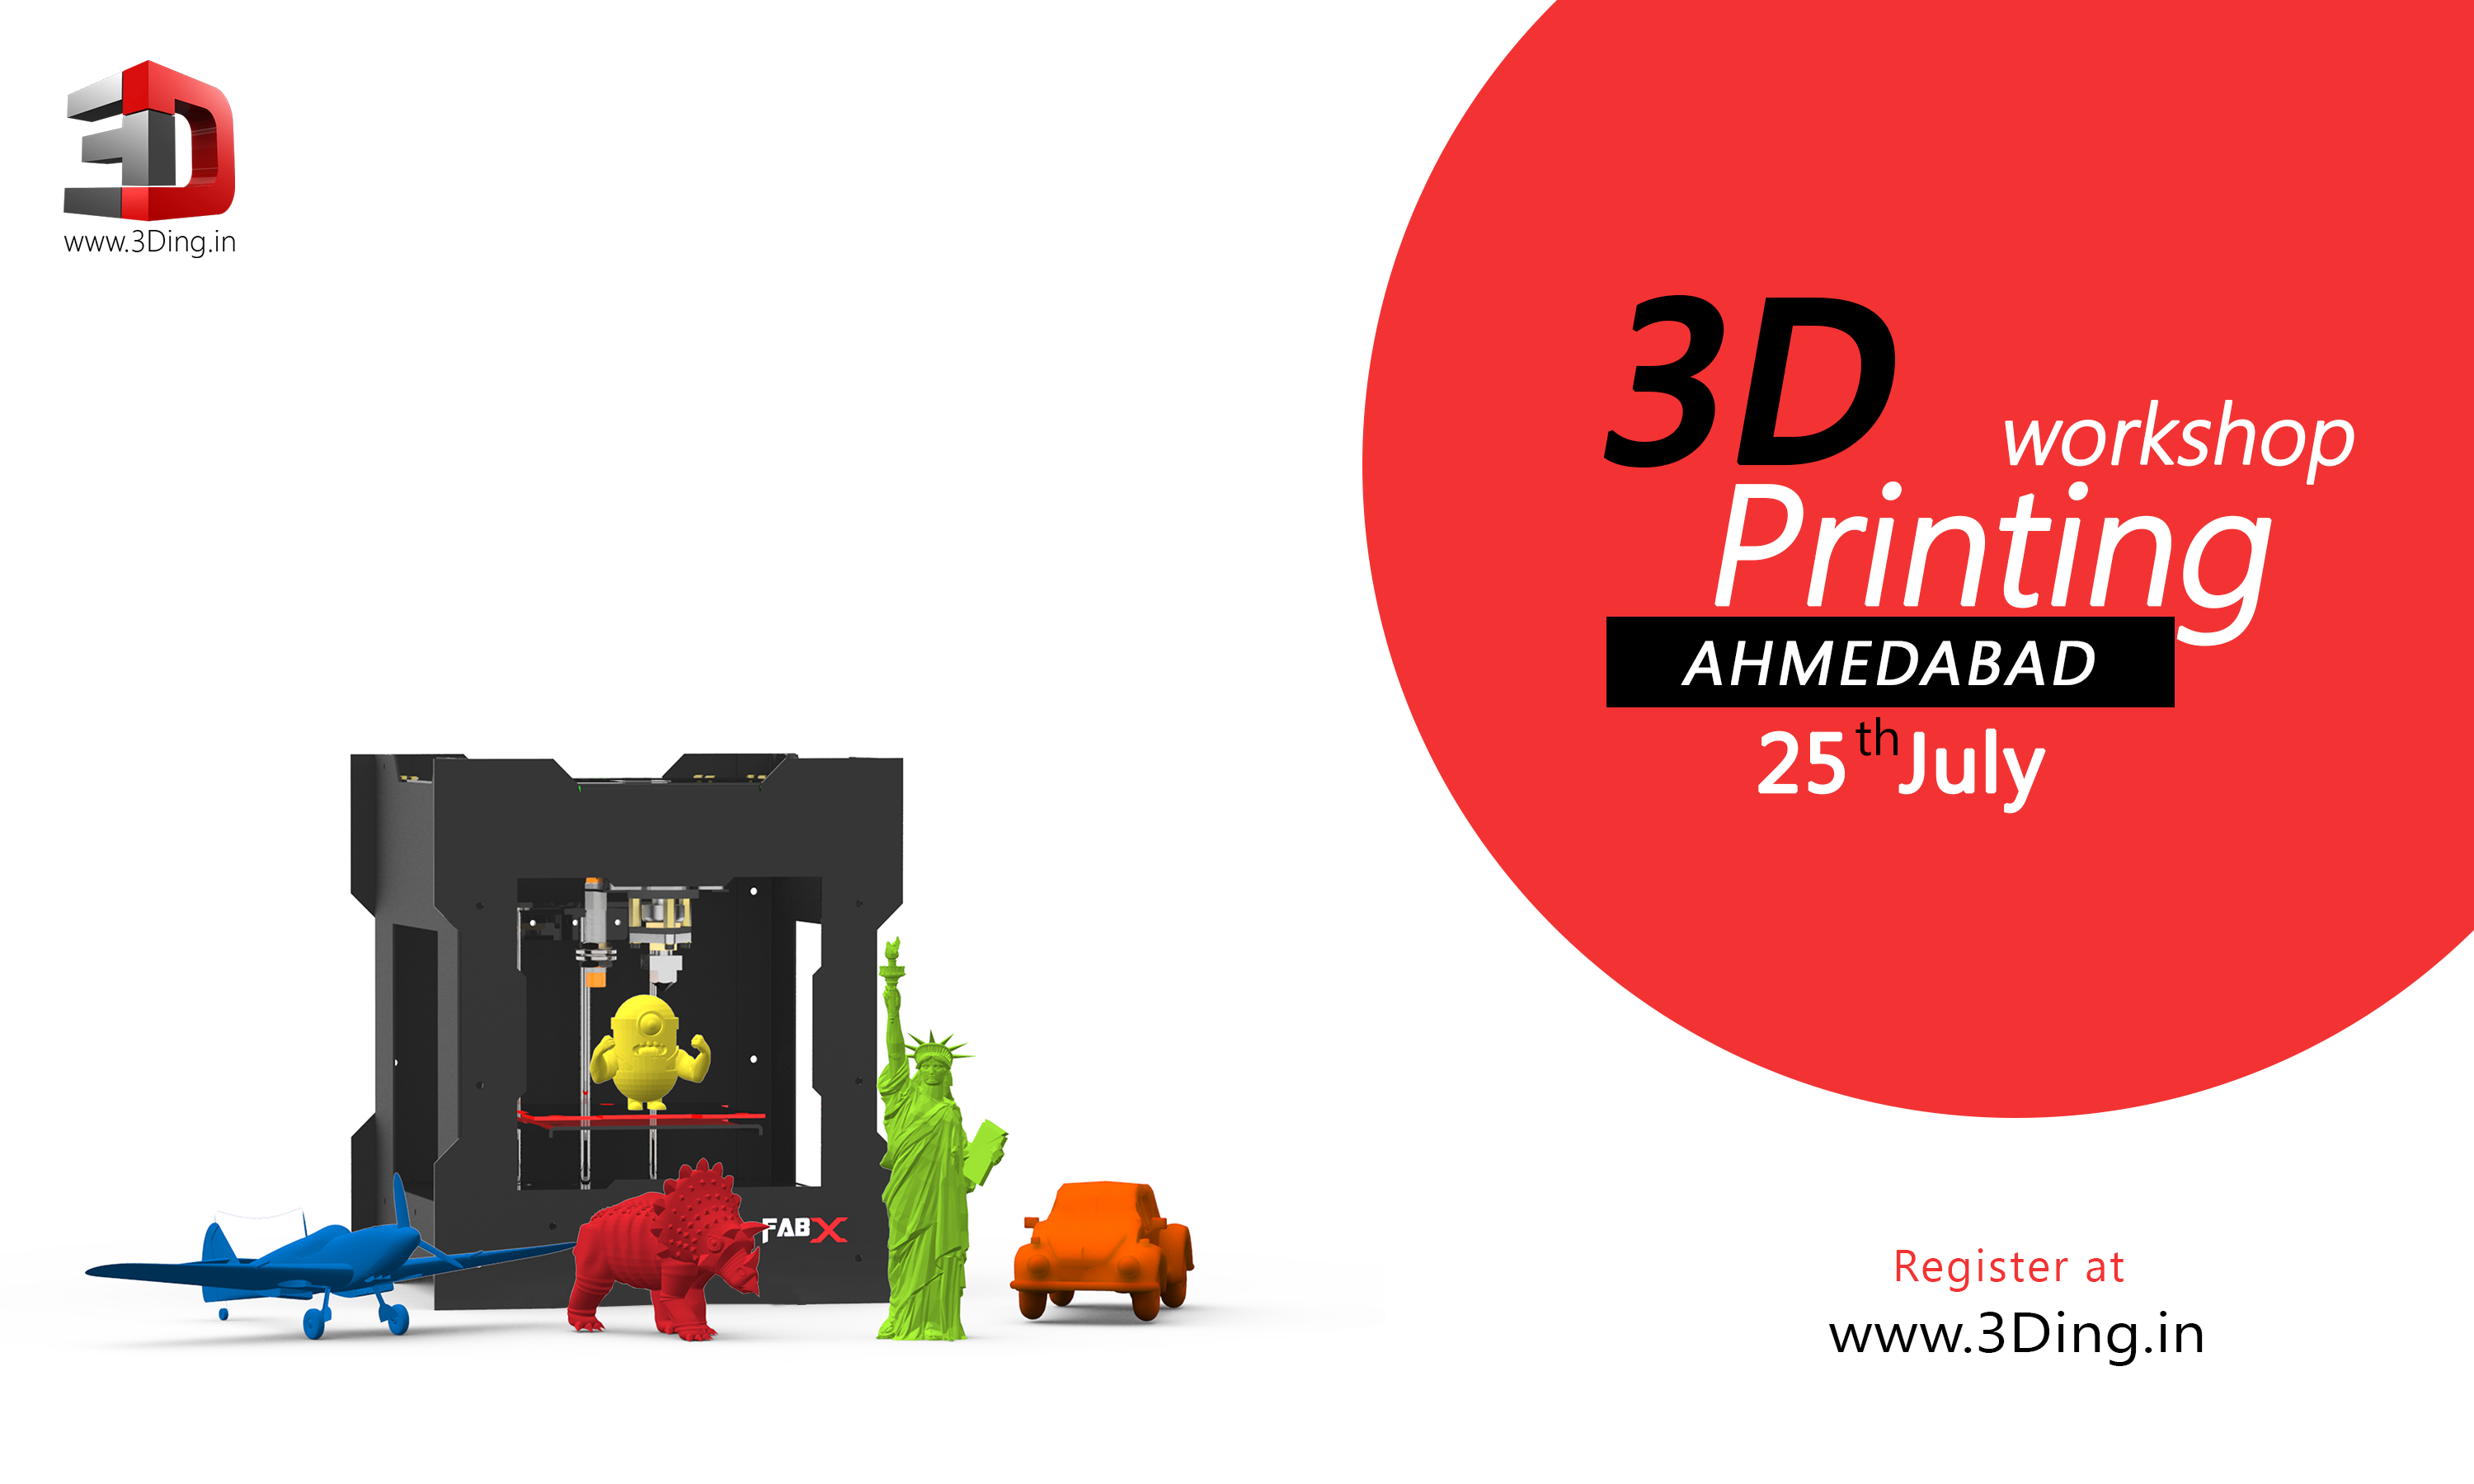 Book Online Tickets for 3D Printing Workshop Ahmedabad, Ahmedabad. Overview:3D Printing is one of the next big things. Of late, there\\\'s a speculation that 3D Printers would be part of the everyday life in the near future. We at 3Ding are preparing the world for such an upcoming future. This 1-day workshop is all